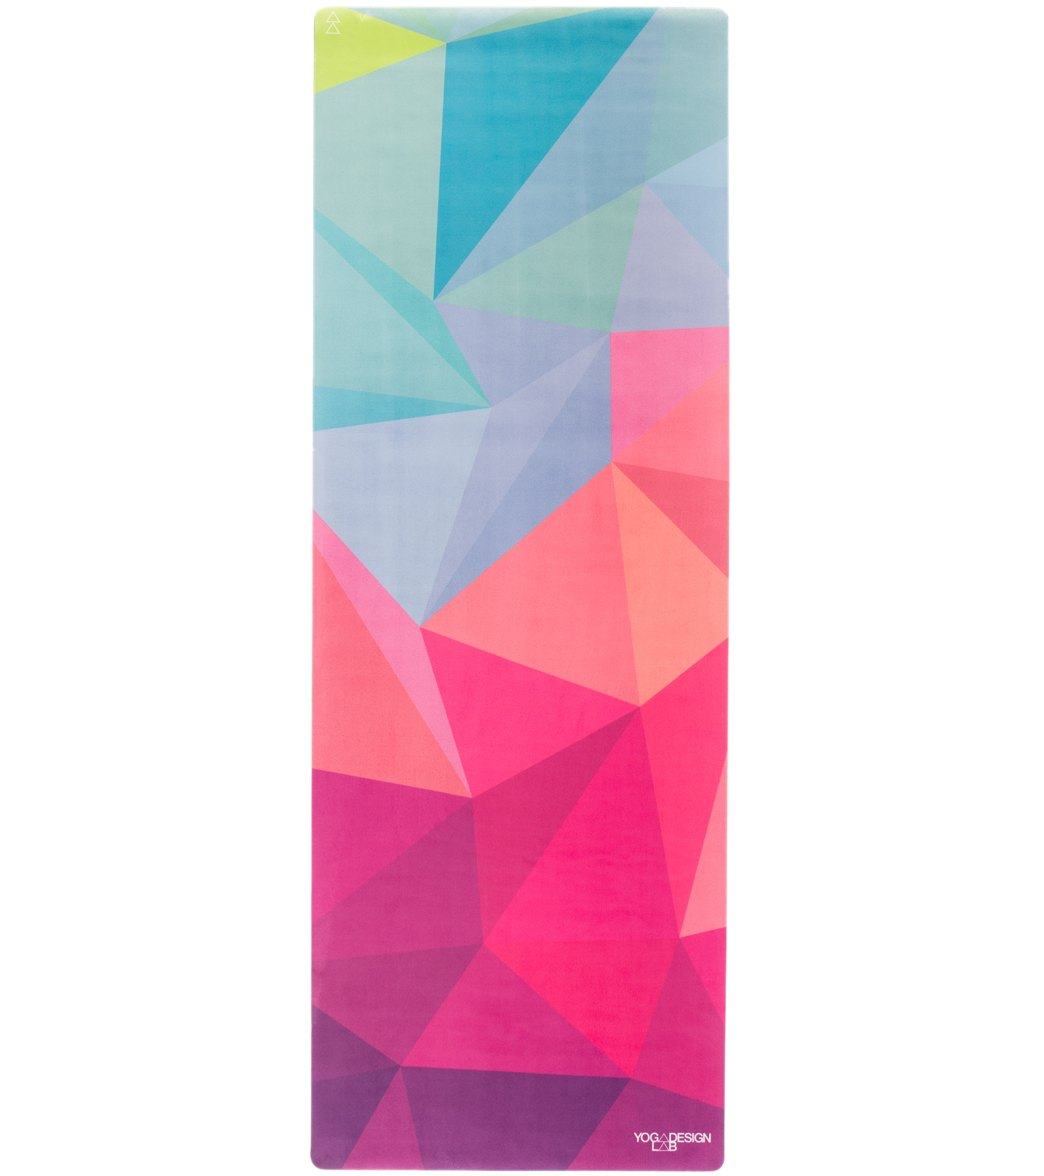 Yoga Design Lab Geo Yoga Mat Towel Combo 70 3 5mm At Swimoutlet Com Free Shipping